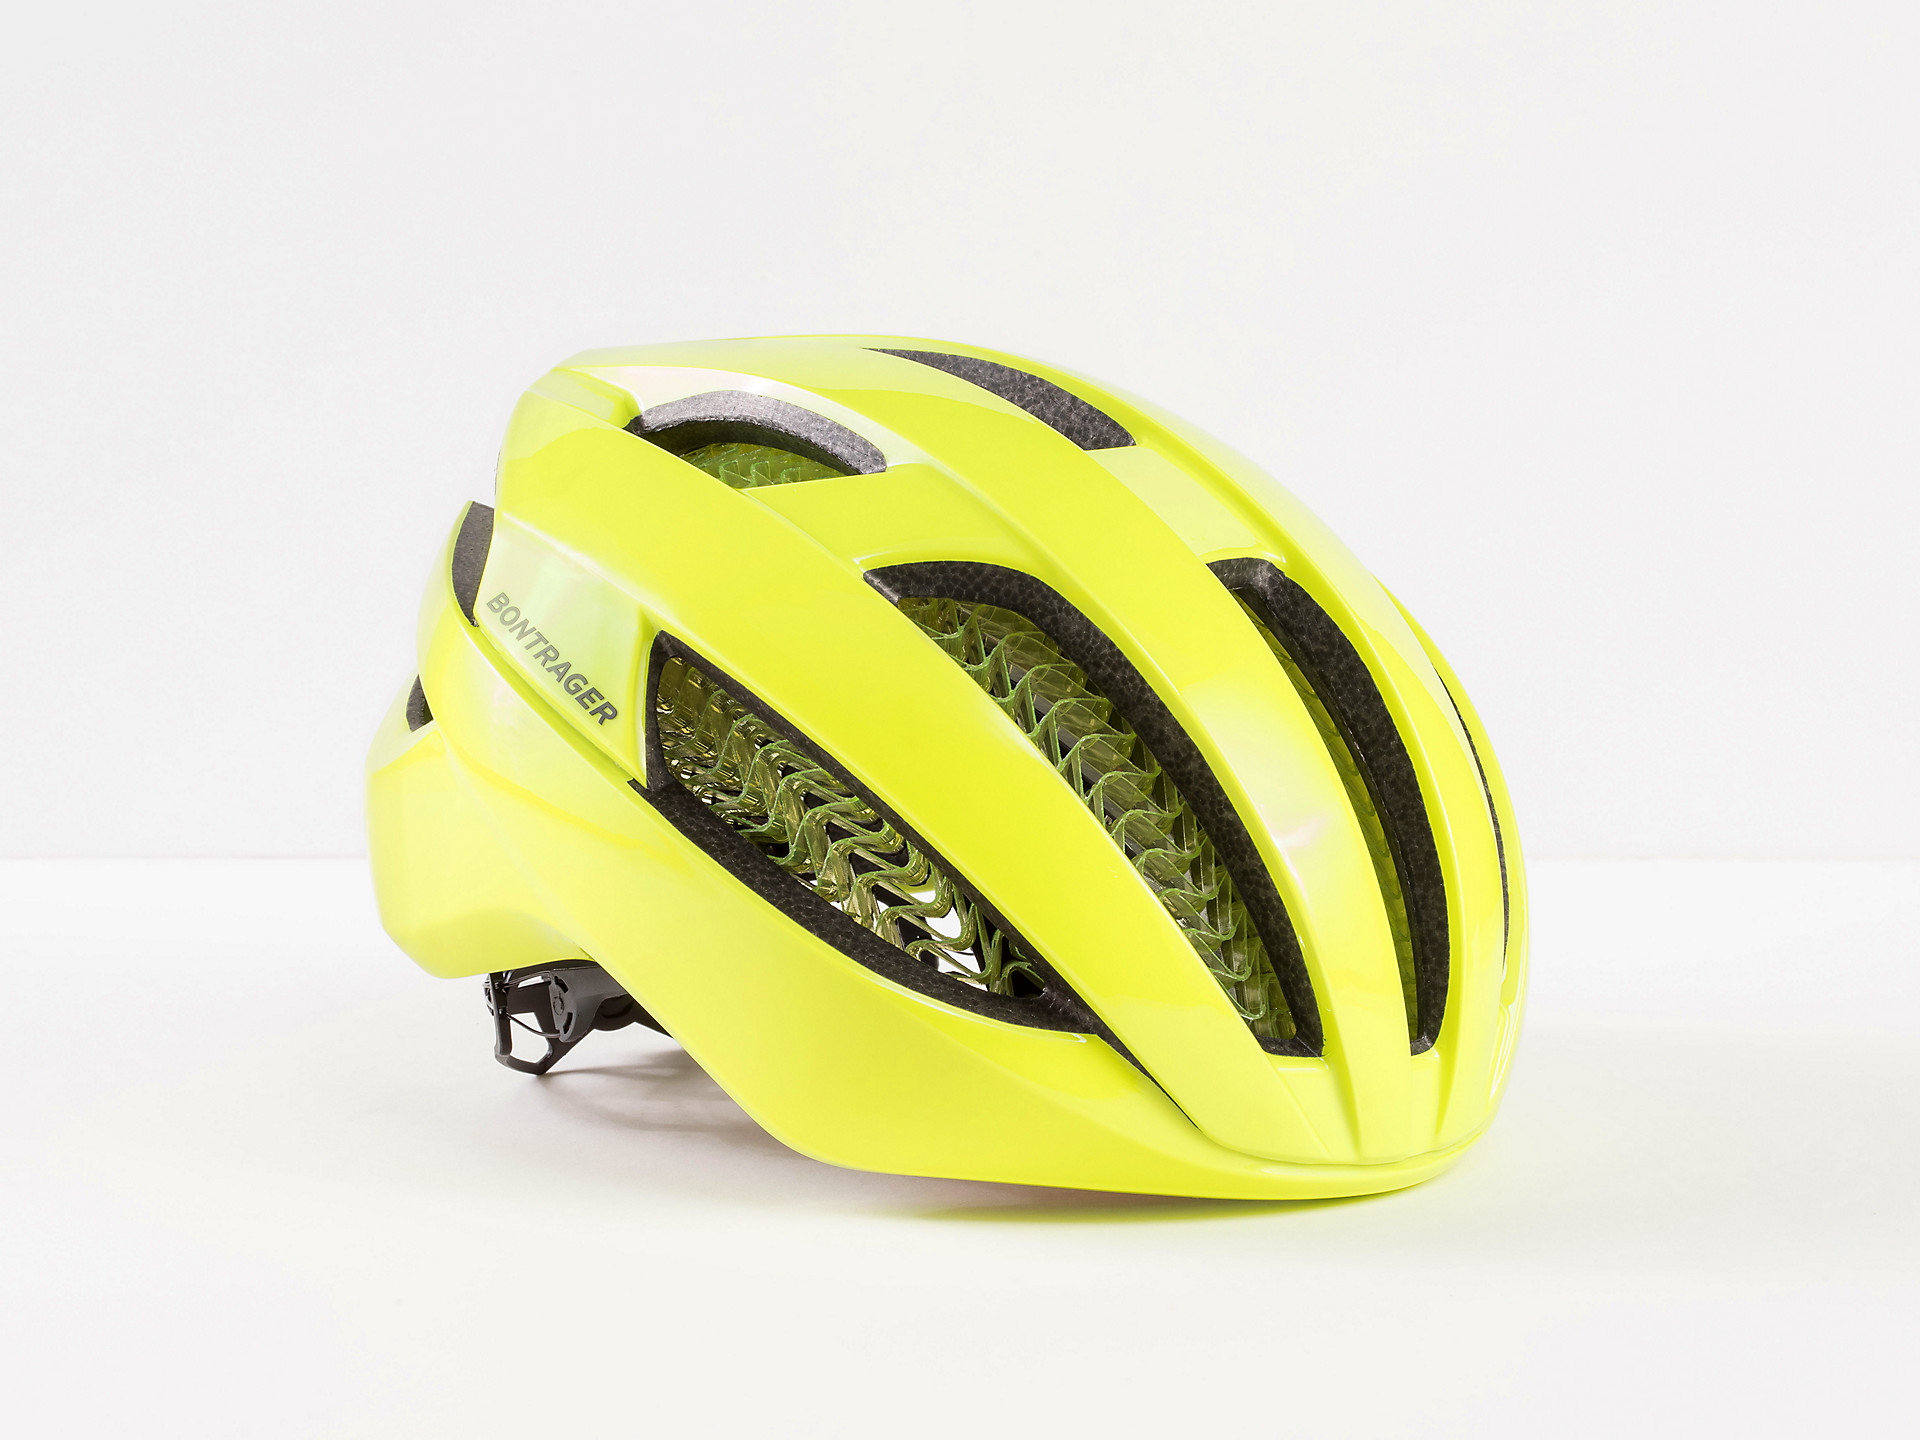 bontrager helmet with wavecel interior